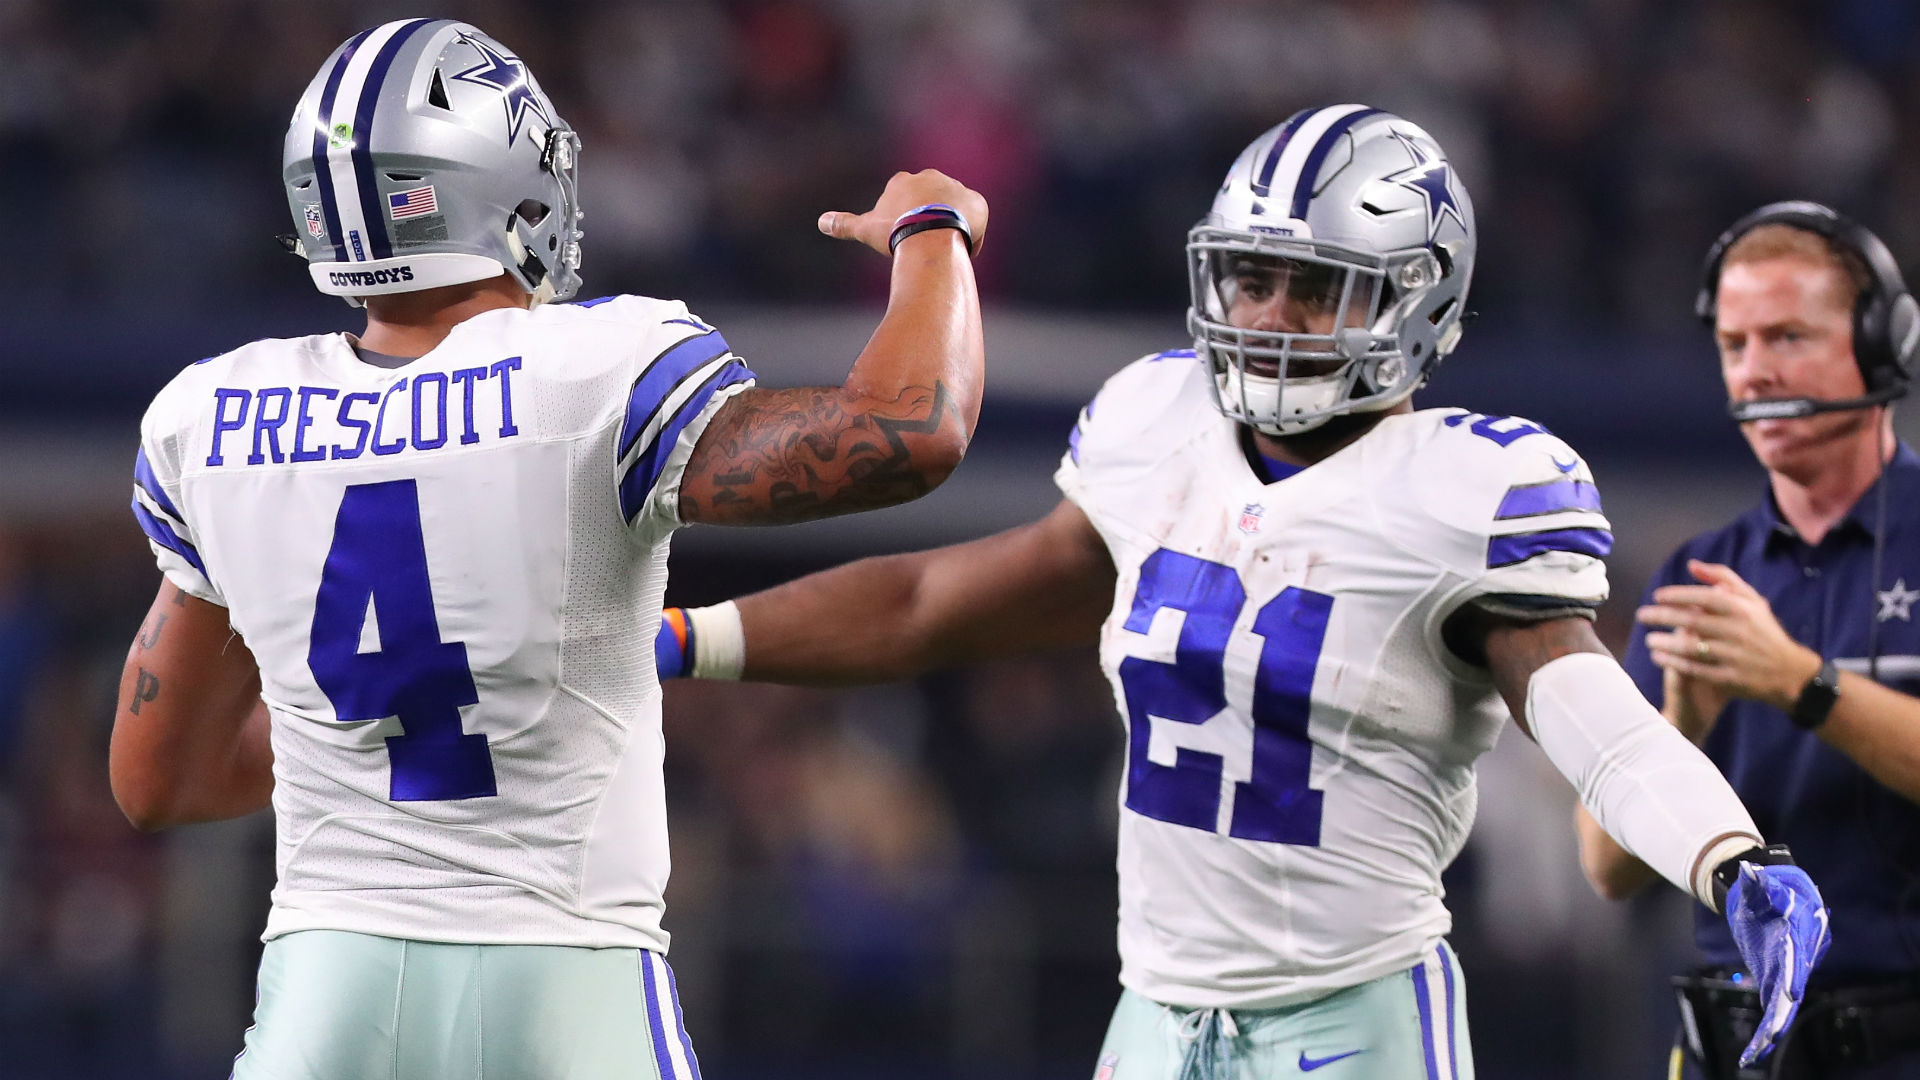 955ab7cf570 NFL, TV networks force-feeding you Cowboys with good reason | Sporting News